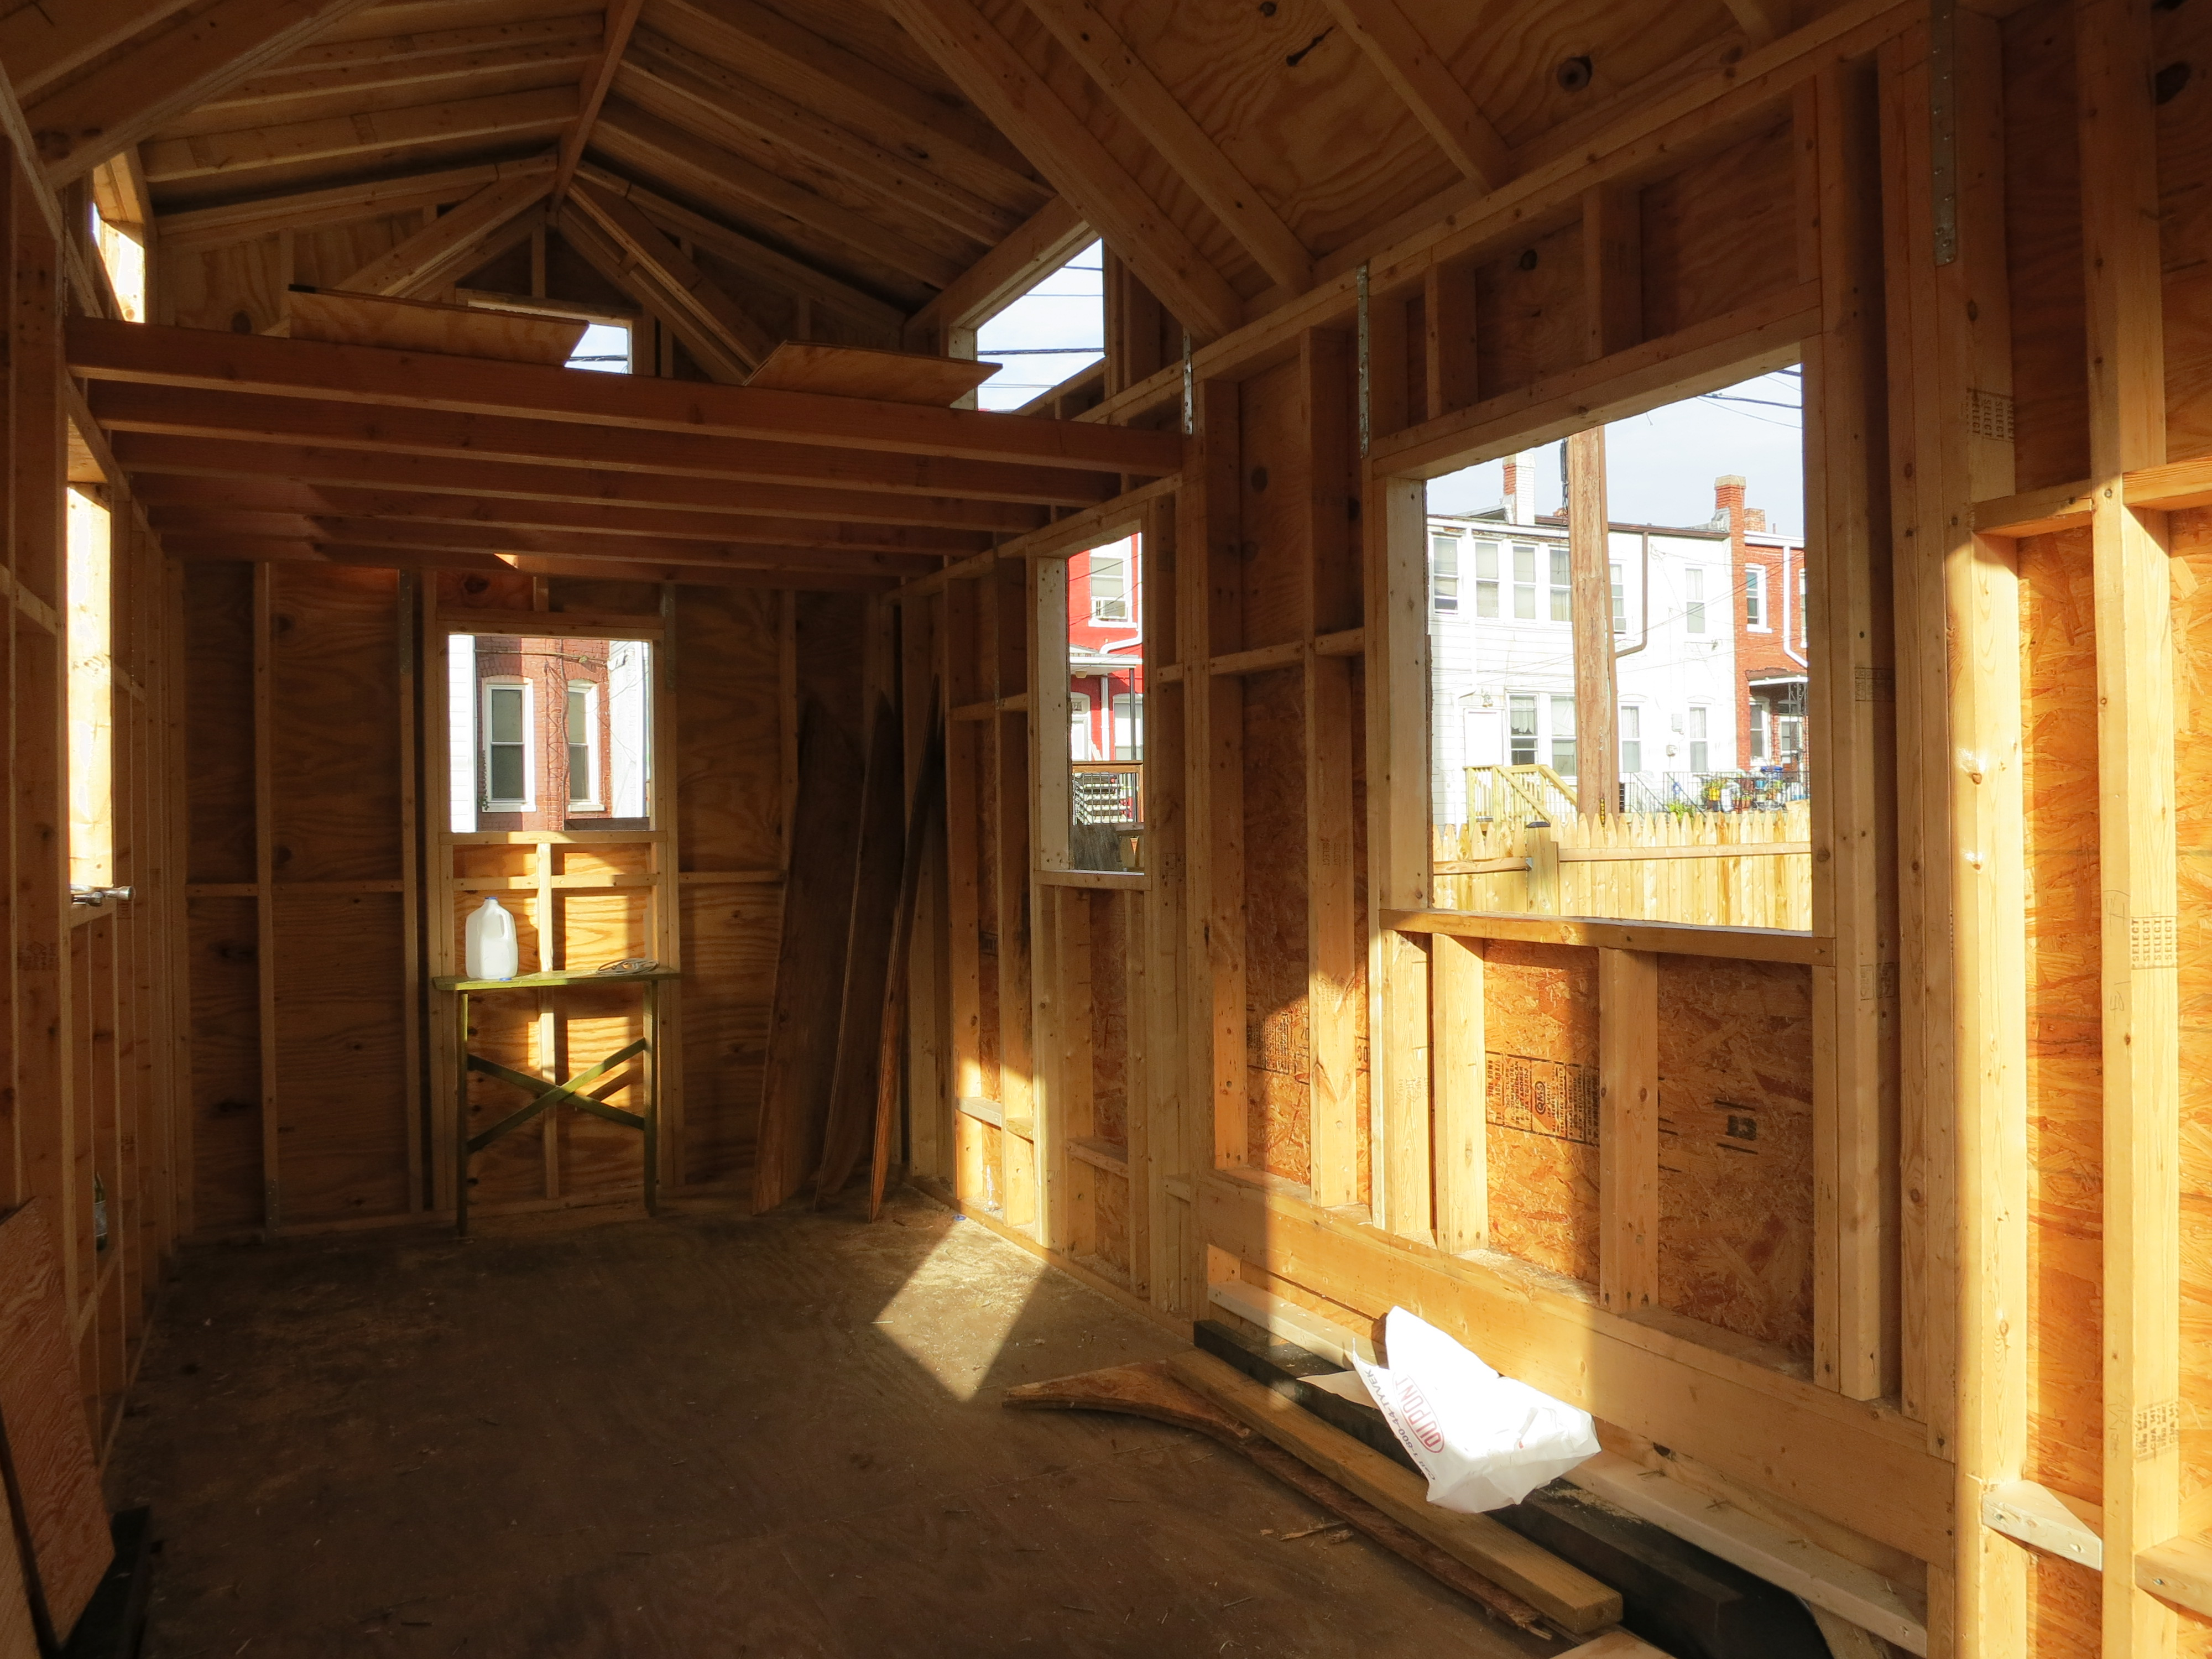 House inside with windows cut out and new loft